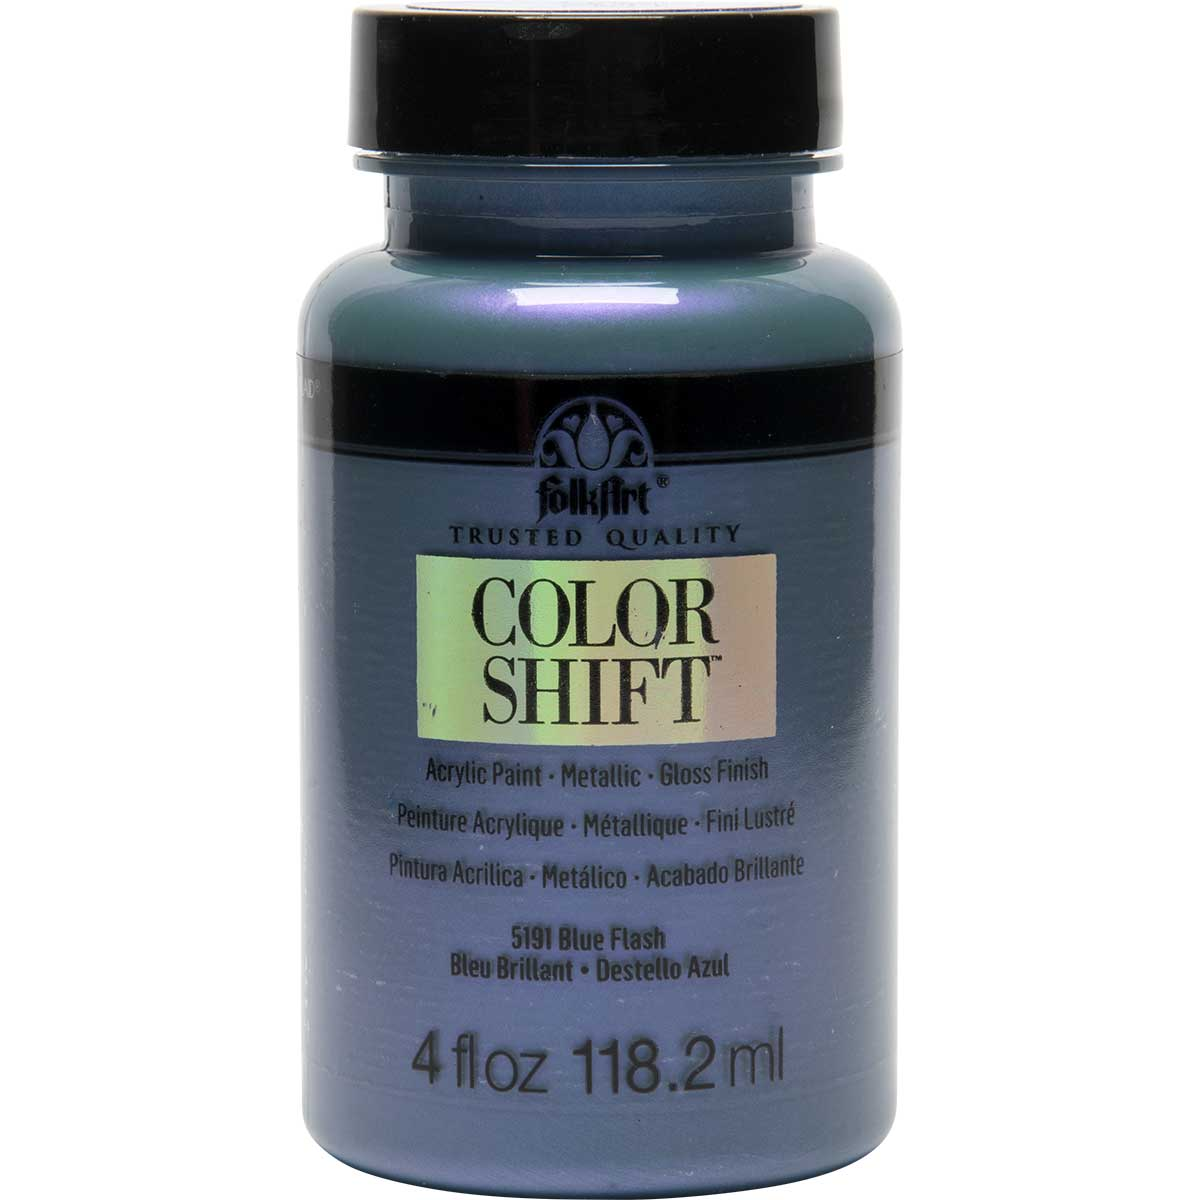 FolkArt ® Color Shift™ Acrylic Paint - Blue Flash, 4 oz. - 5191